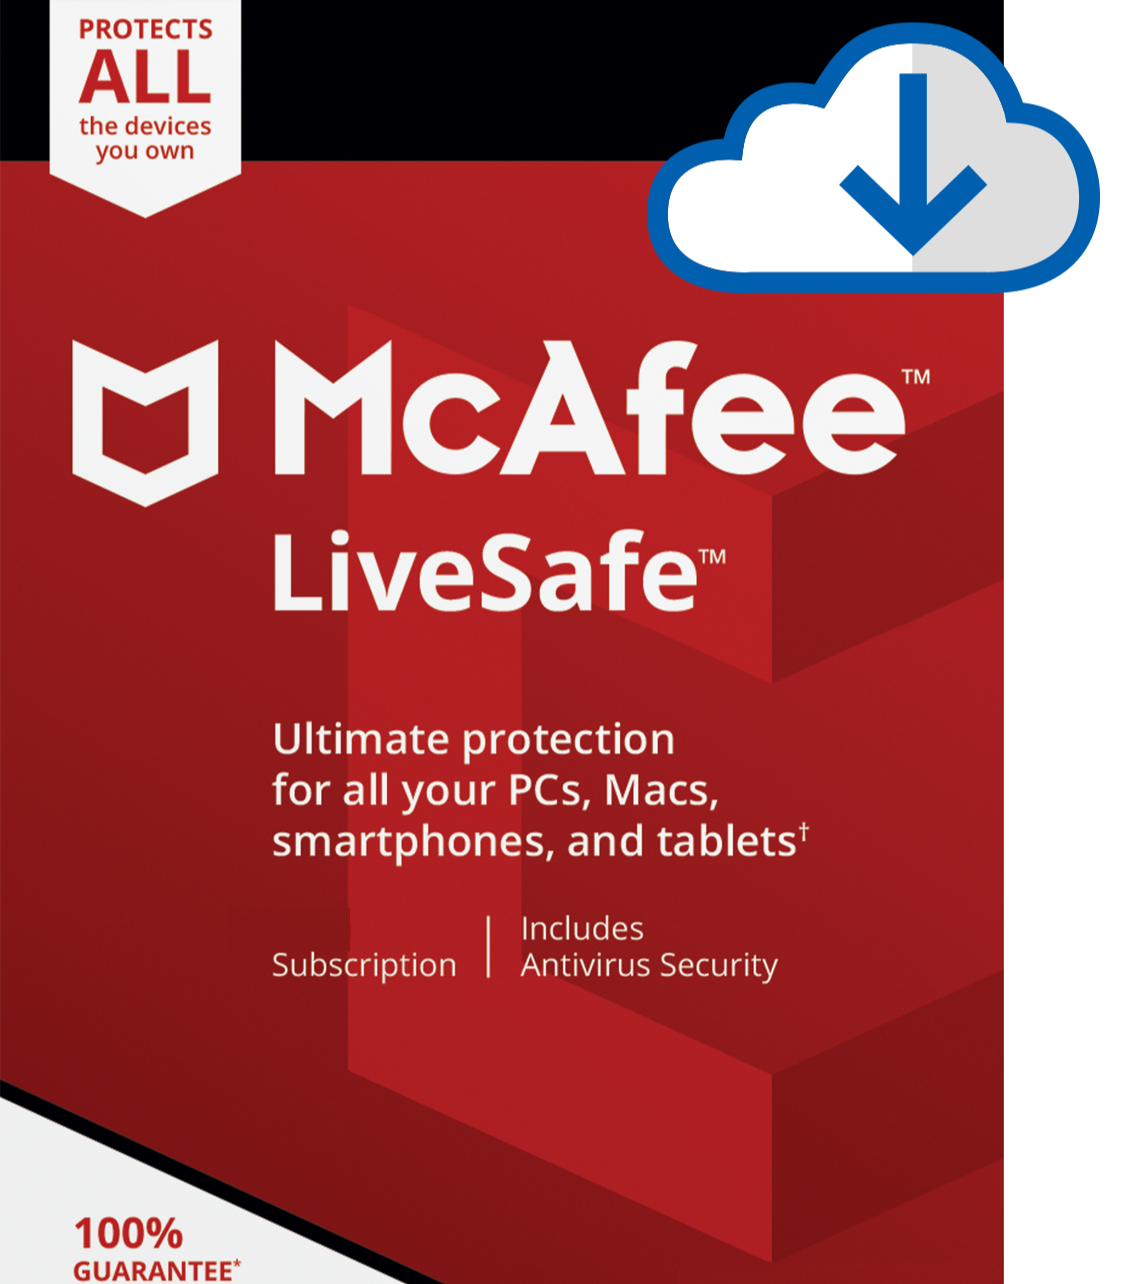 MCAFEE LIVESAFE 2021 - 5 Year  Product Key UNLIMITED- Windows Mac Email Delivery - $94.99